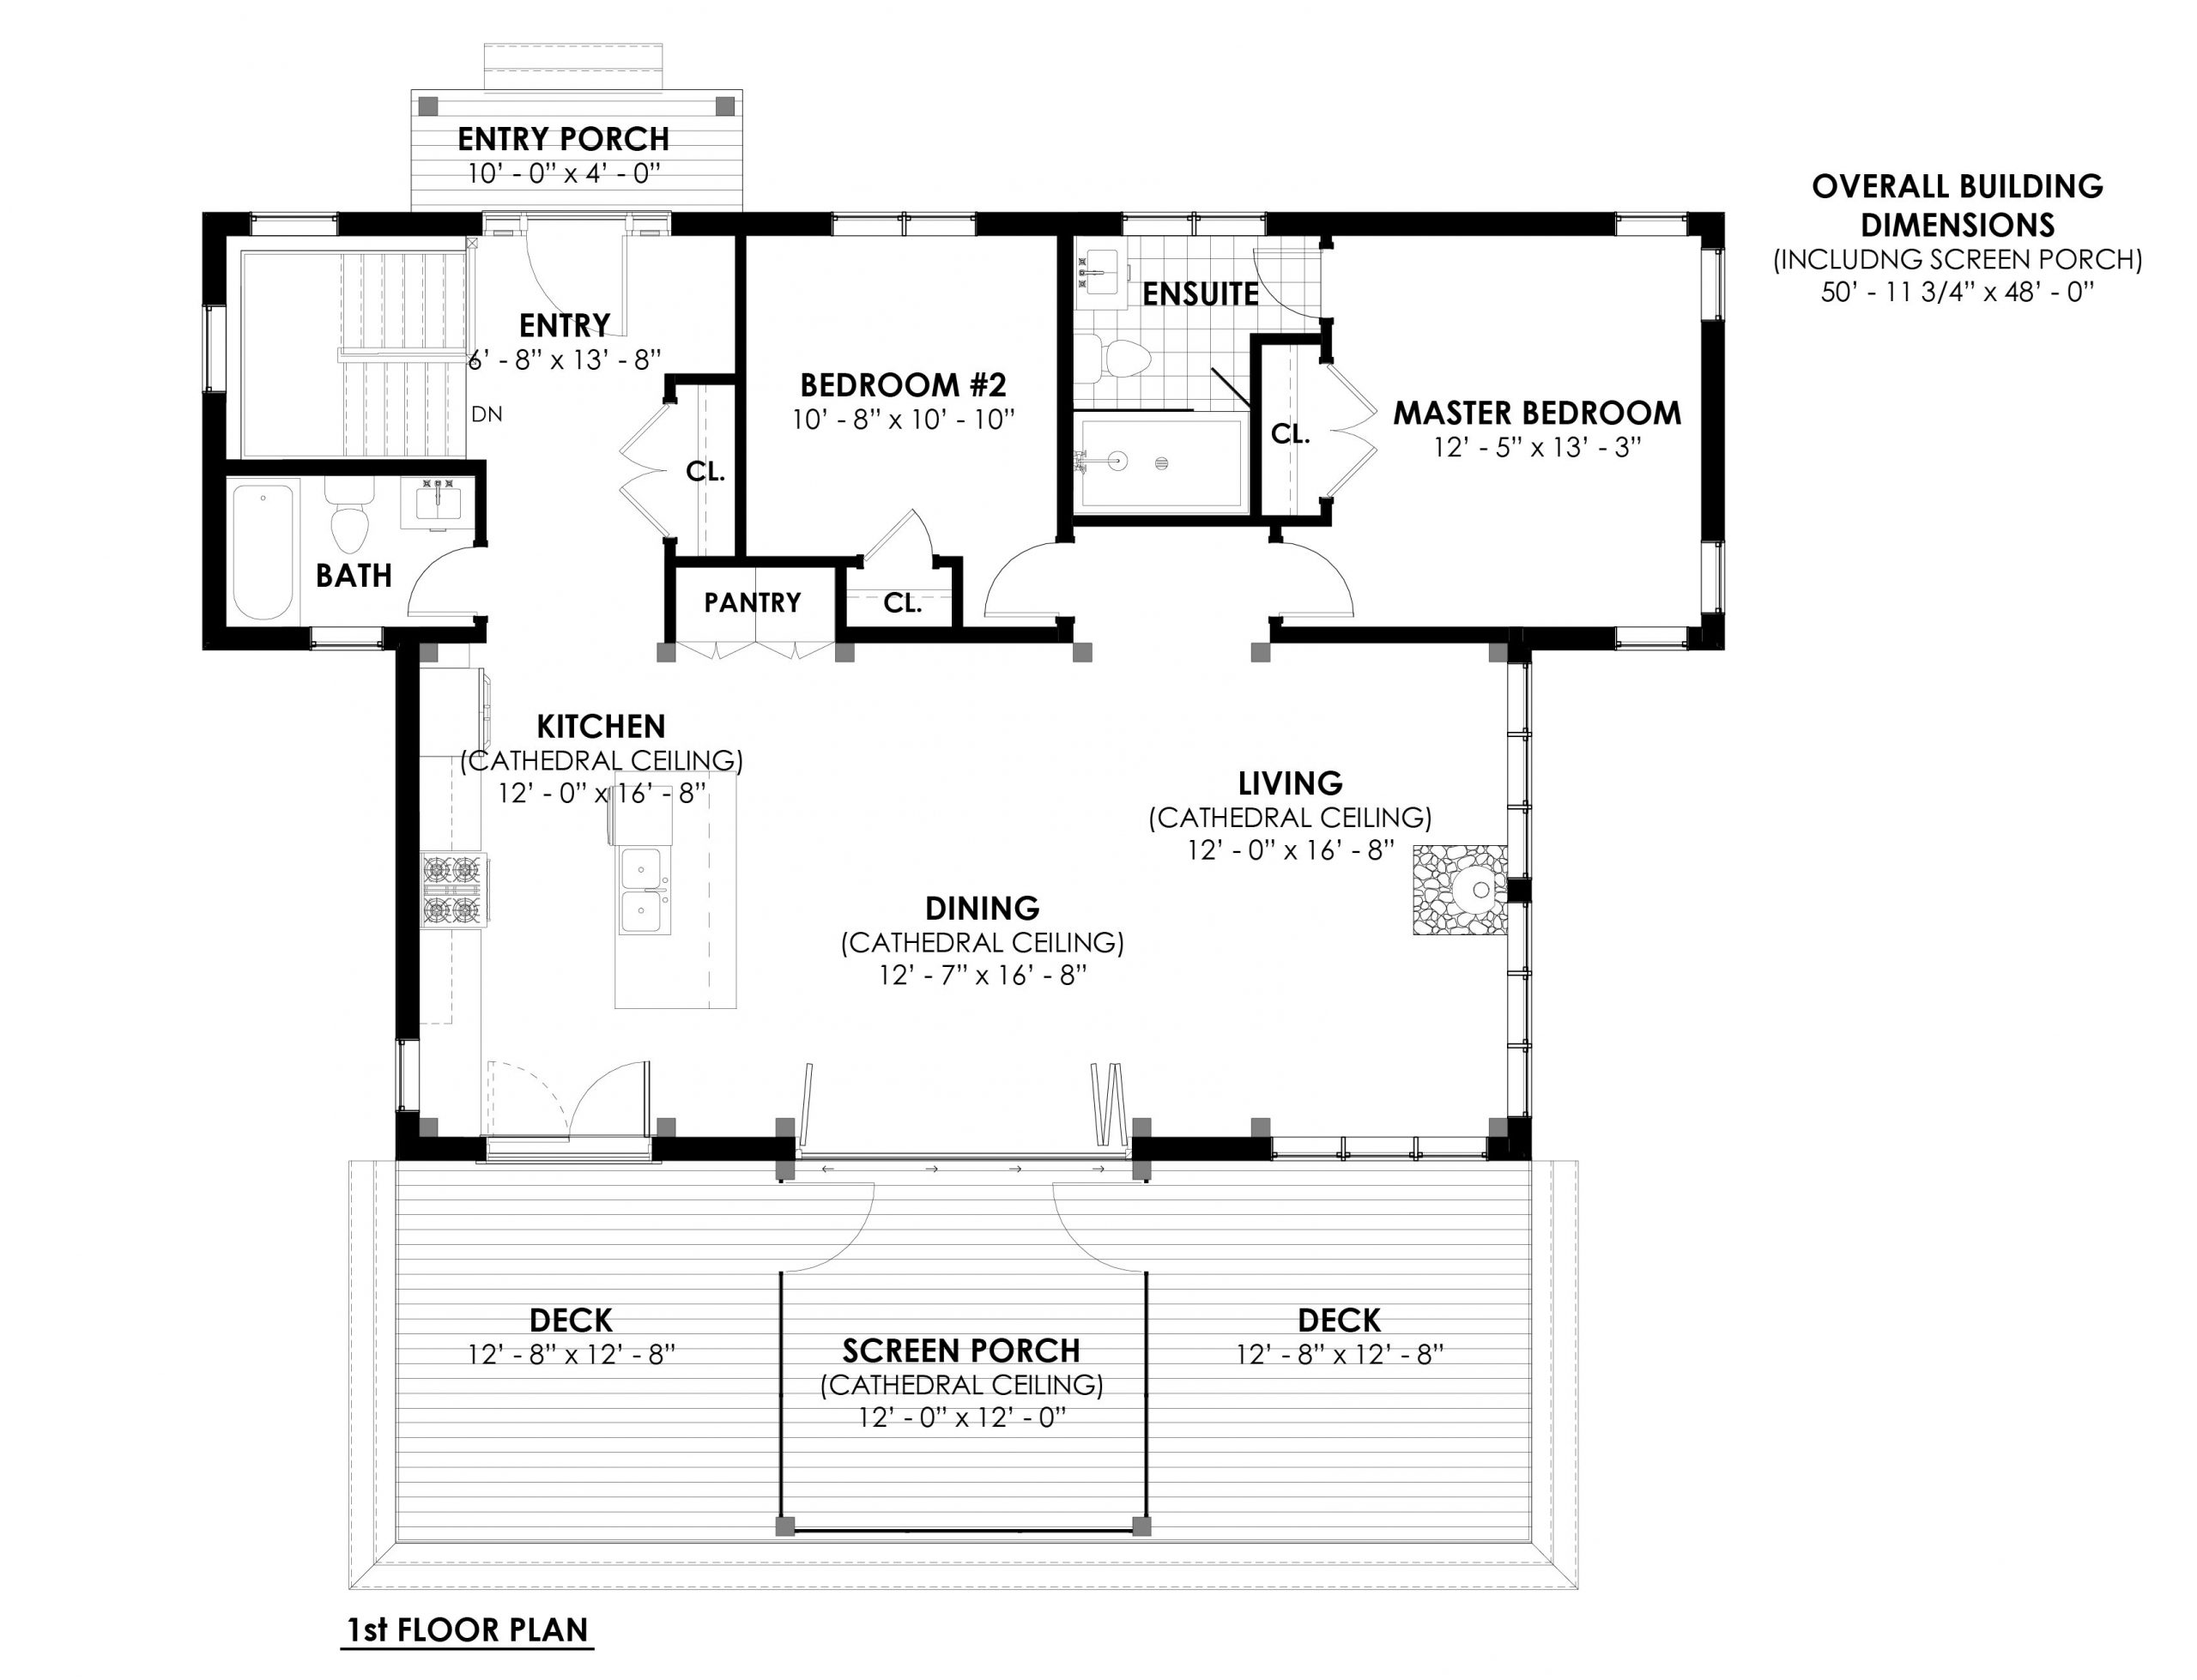 Normerica Timber Homes, Timber Frame, House Plans, The Herridge 3979, First Floor Plan